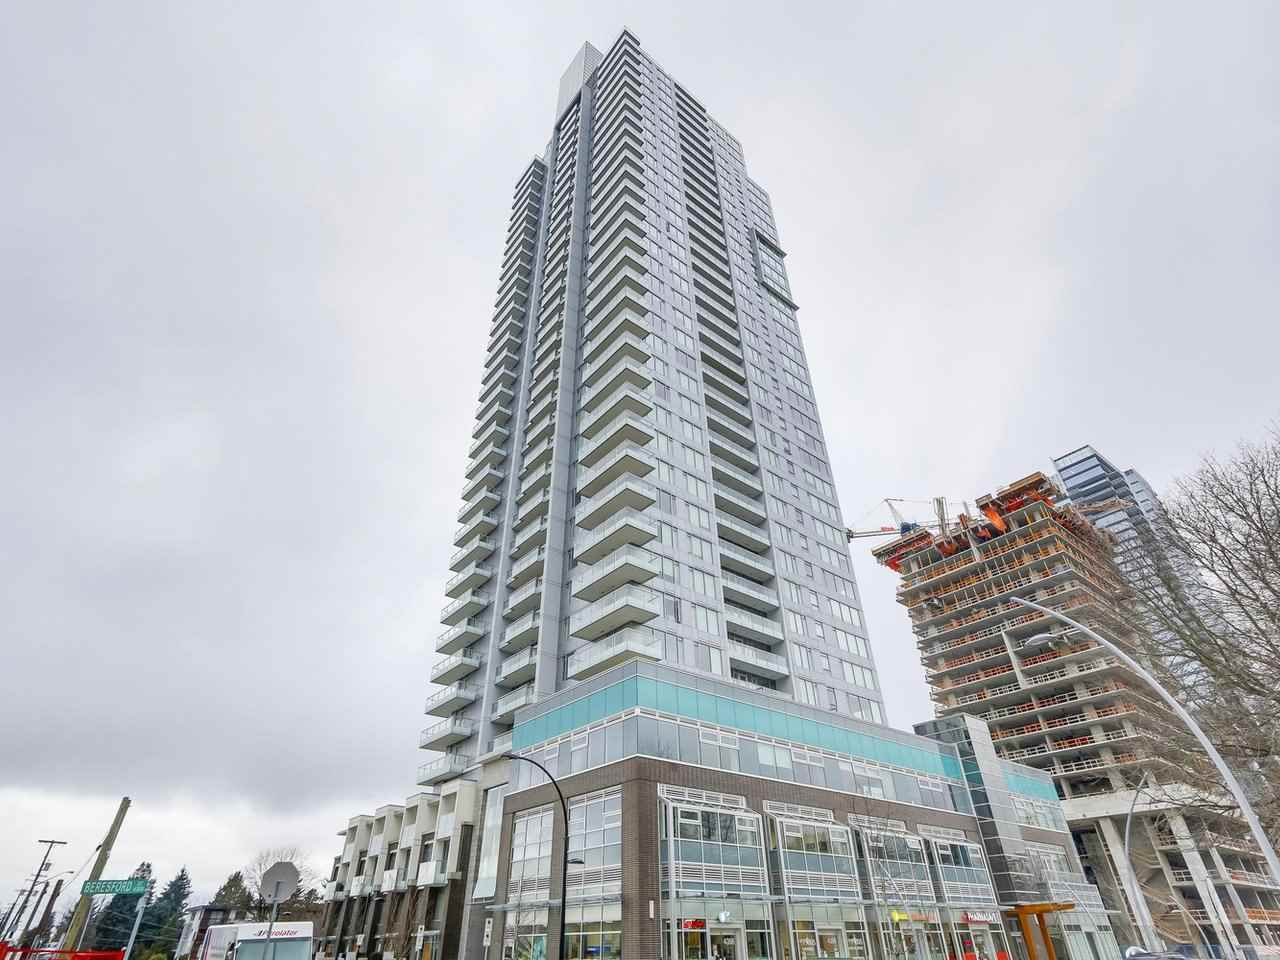 Main Photo: 2002 6333 SILVER Avenue in Burnaby: Metrotown Condo for sale (Burnaby South)  : MLS®# R2316895